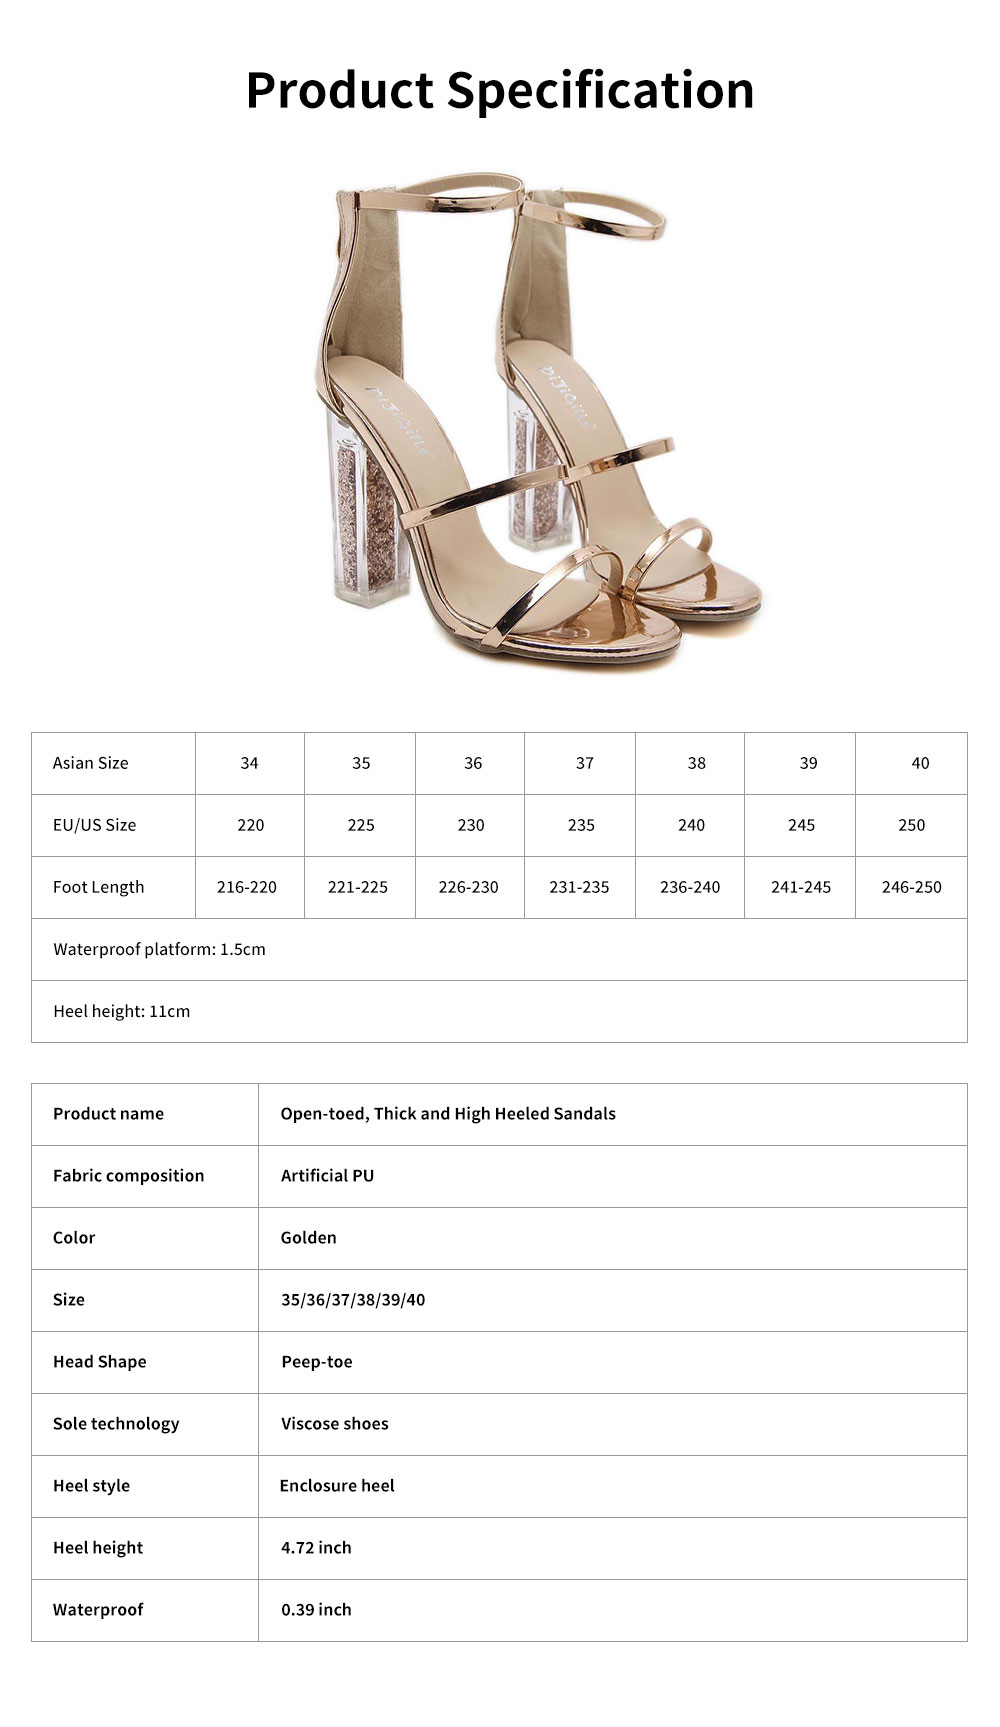 Summer 2020 Open-toed Thick and High Heeled Sandals, New Sequined Transparent High Heels 6